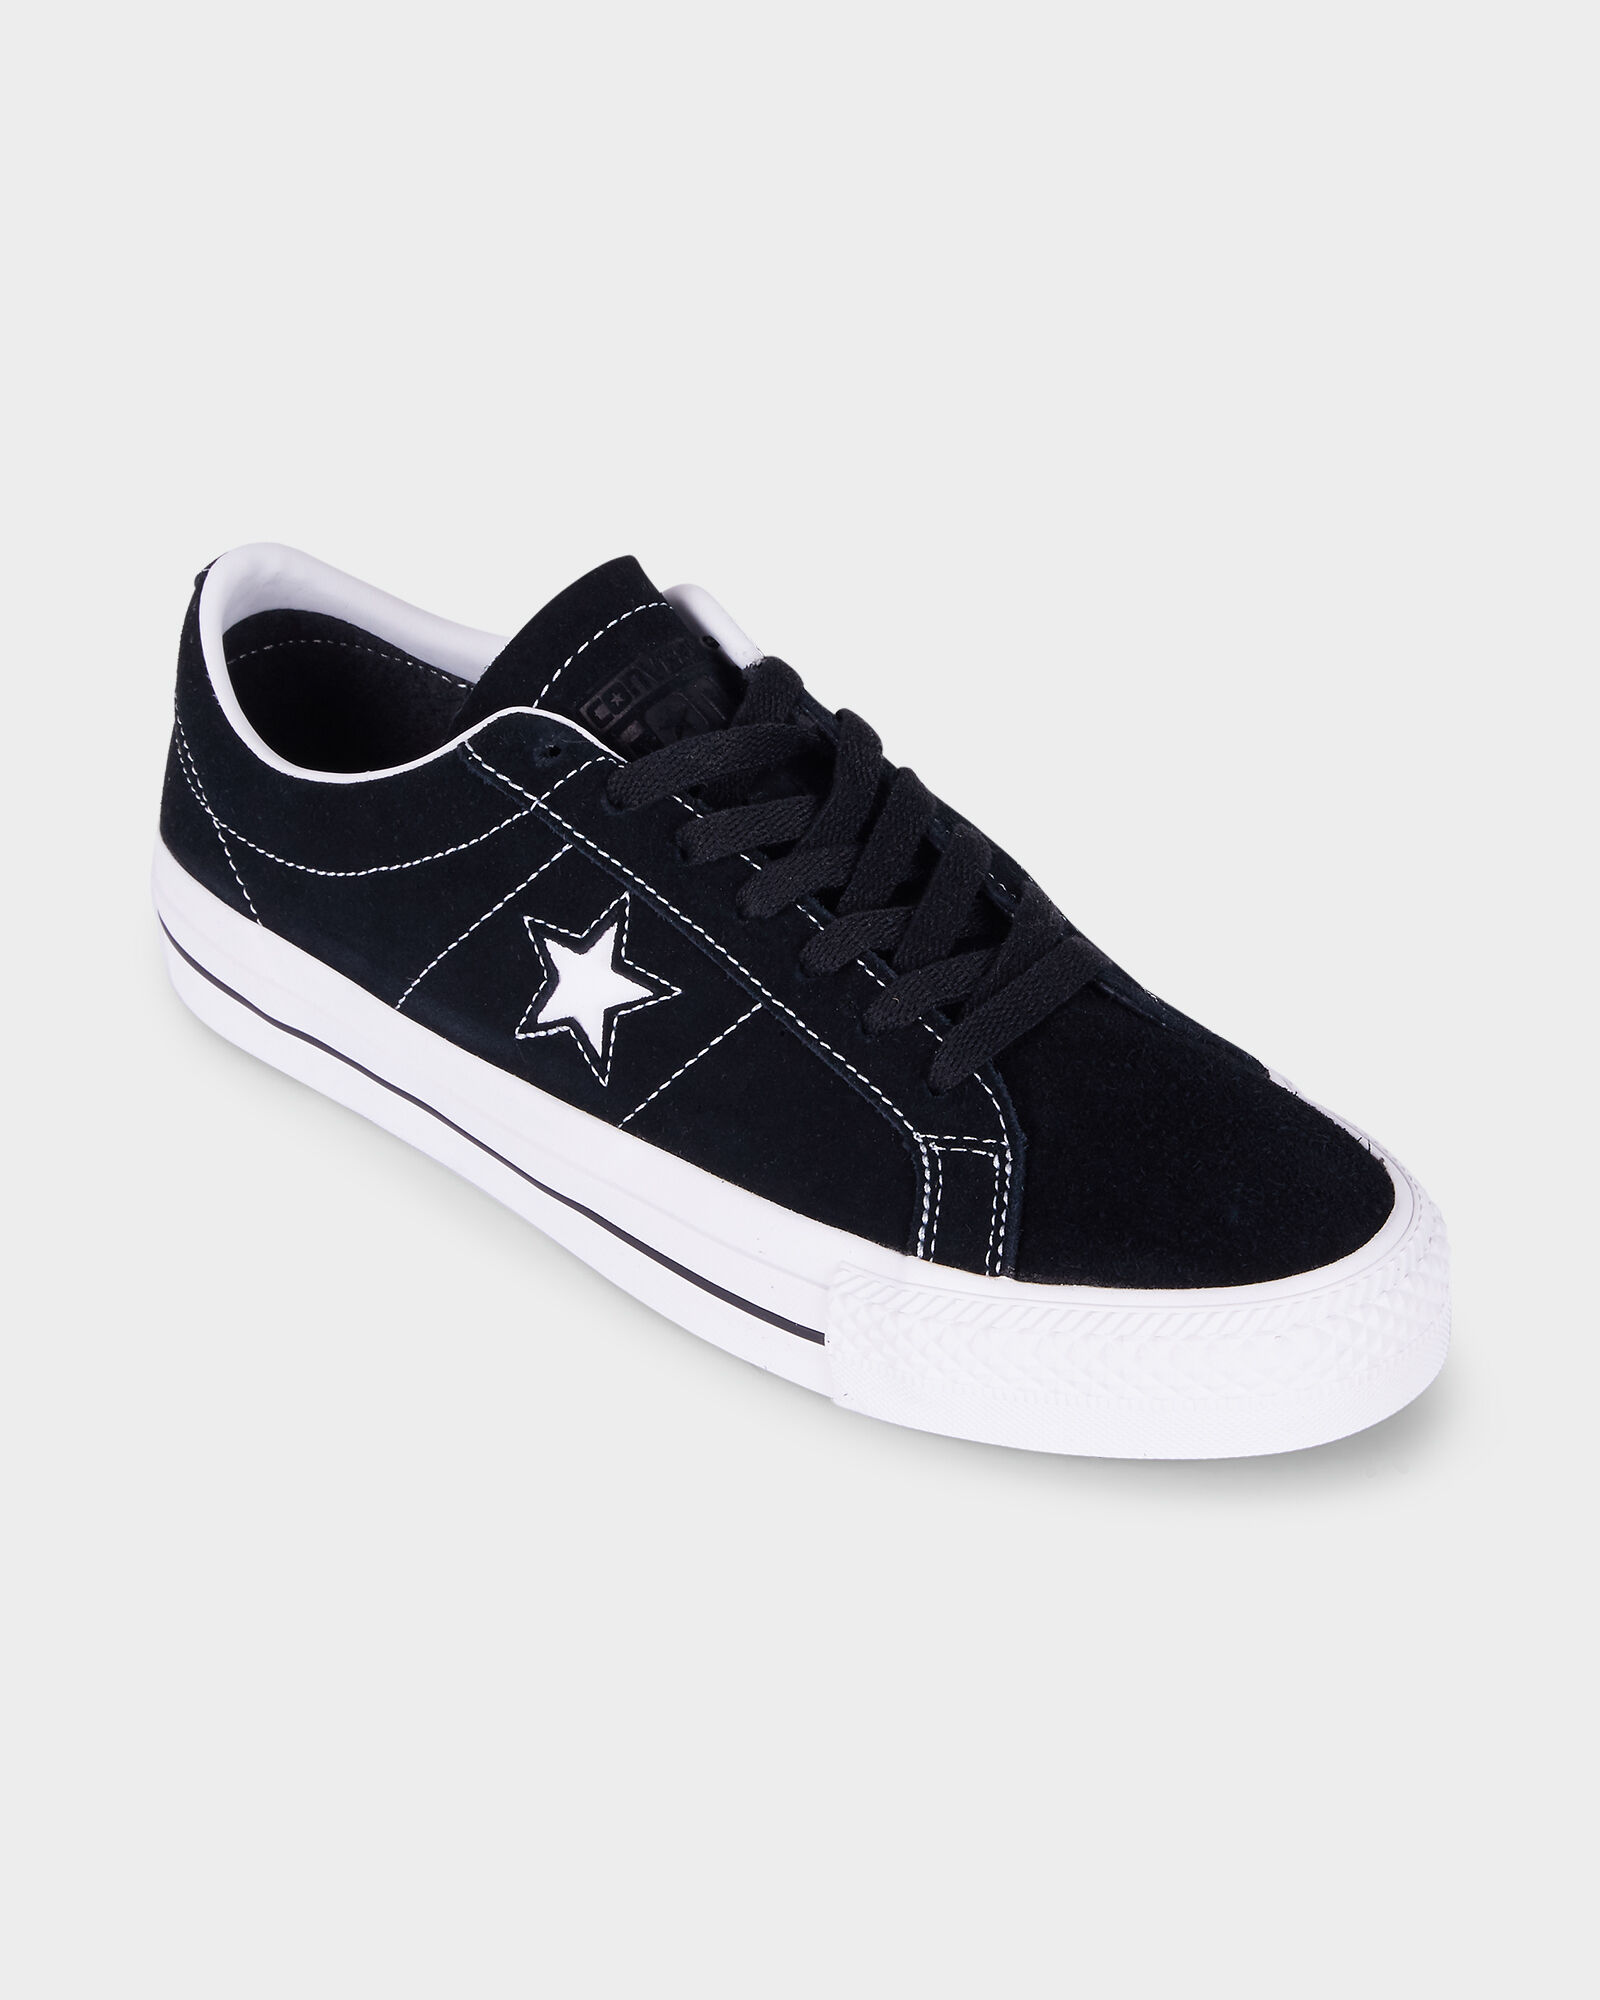 03998cf6466584 switzerland converse cons one star pro mono black skatedeluxe 9f972 5fc0b   france the product image is missing f96fd 18480